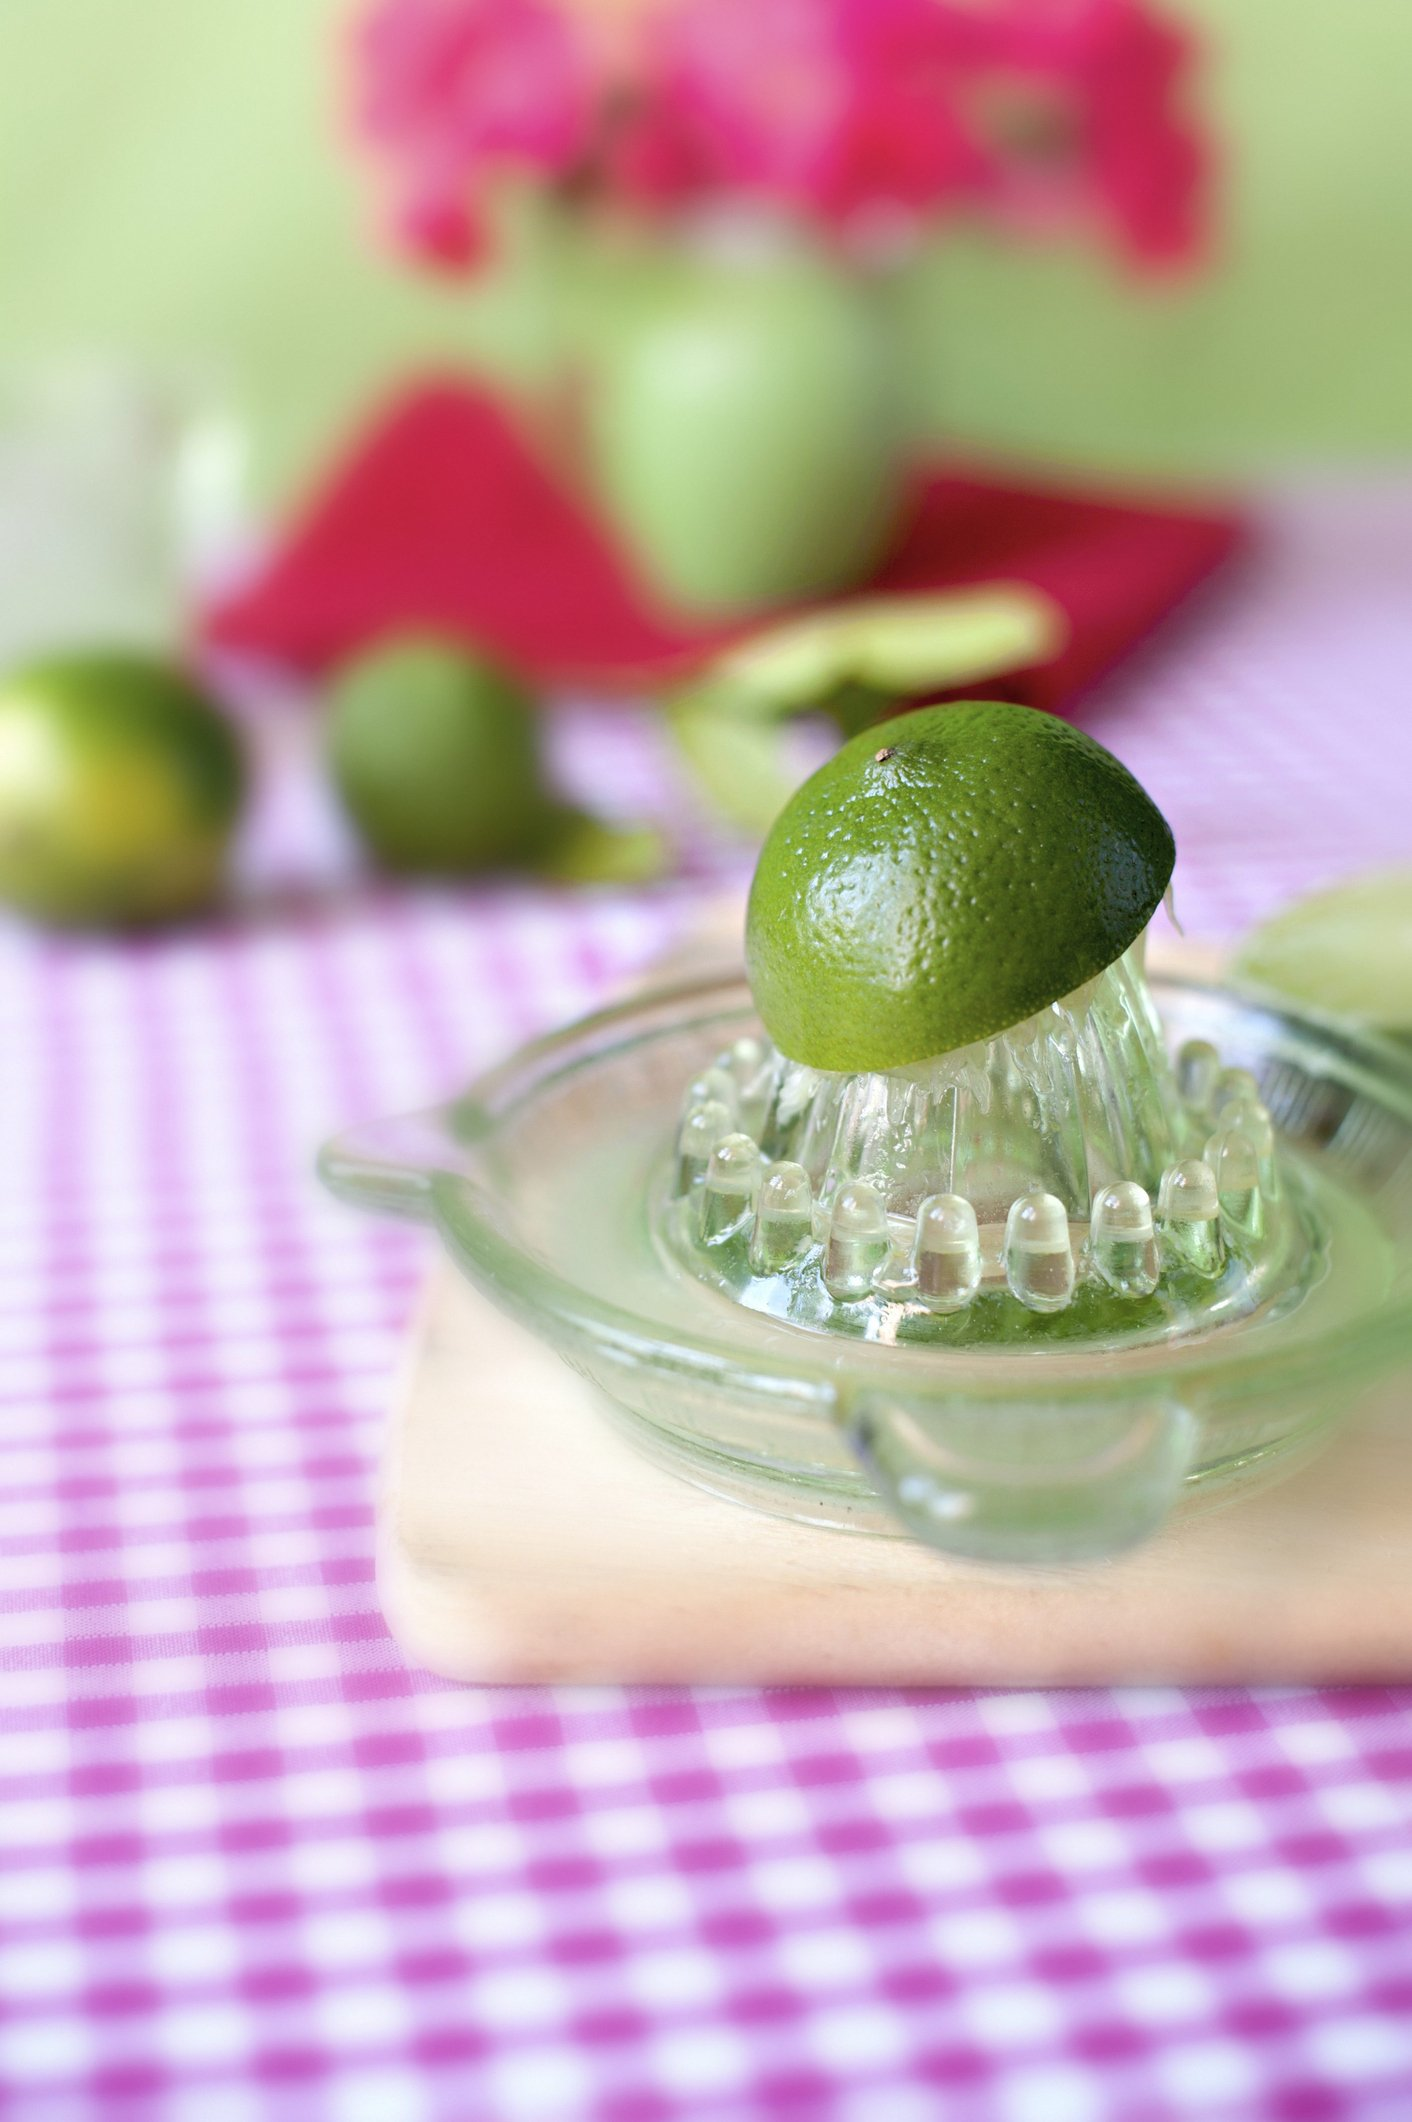 Fresh limes on a red and white gingham cloth being hand juiced in a vintage green glass juicer. | Photo: Getty Images